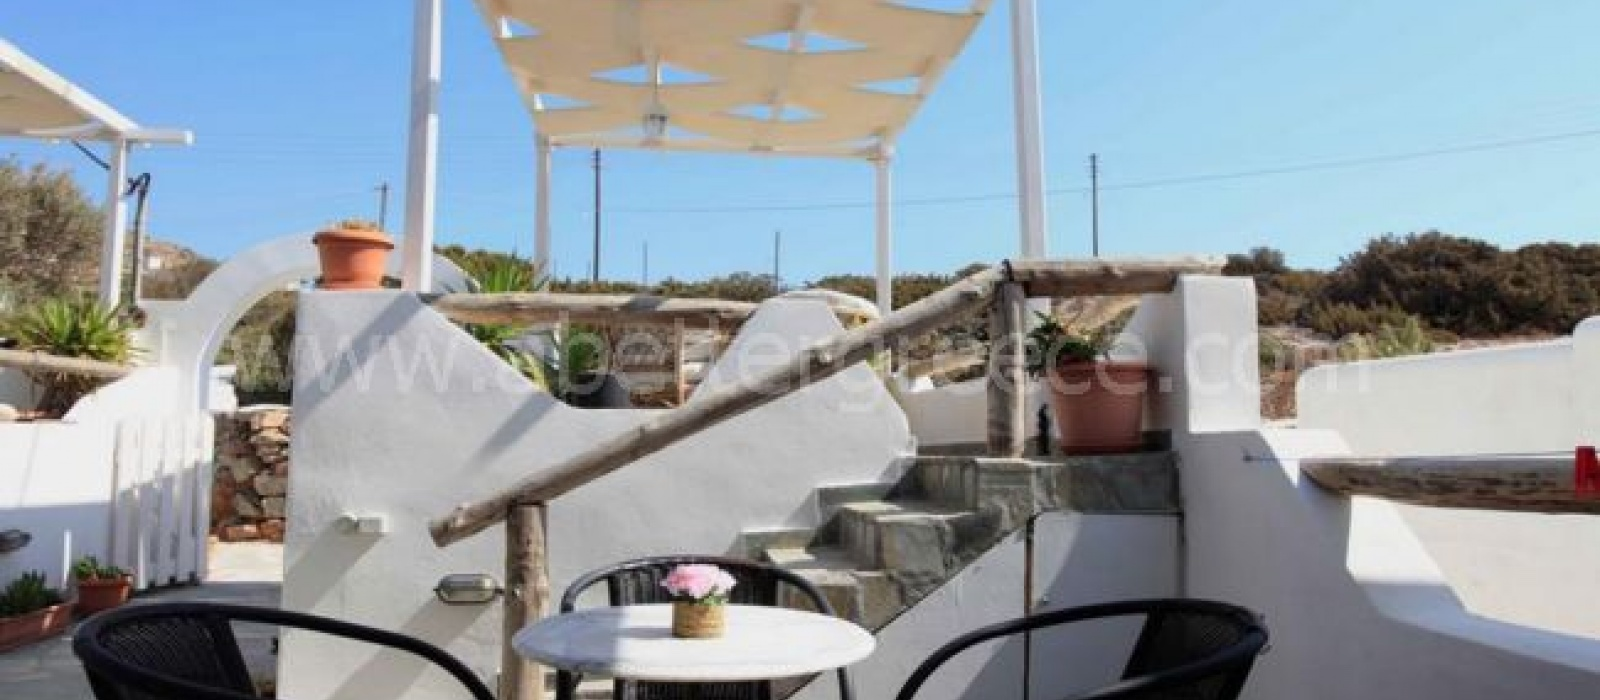 1 Bedrooms, Apartment, Vacation Rental, 1 Bathrooms, Listing ID 1224, Sikinos, Greece,